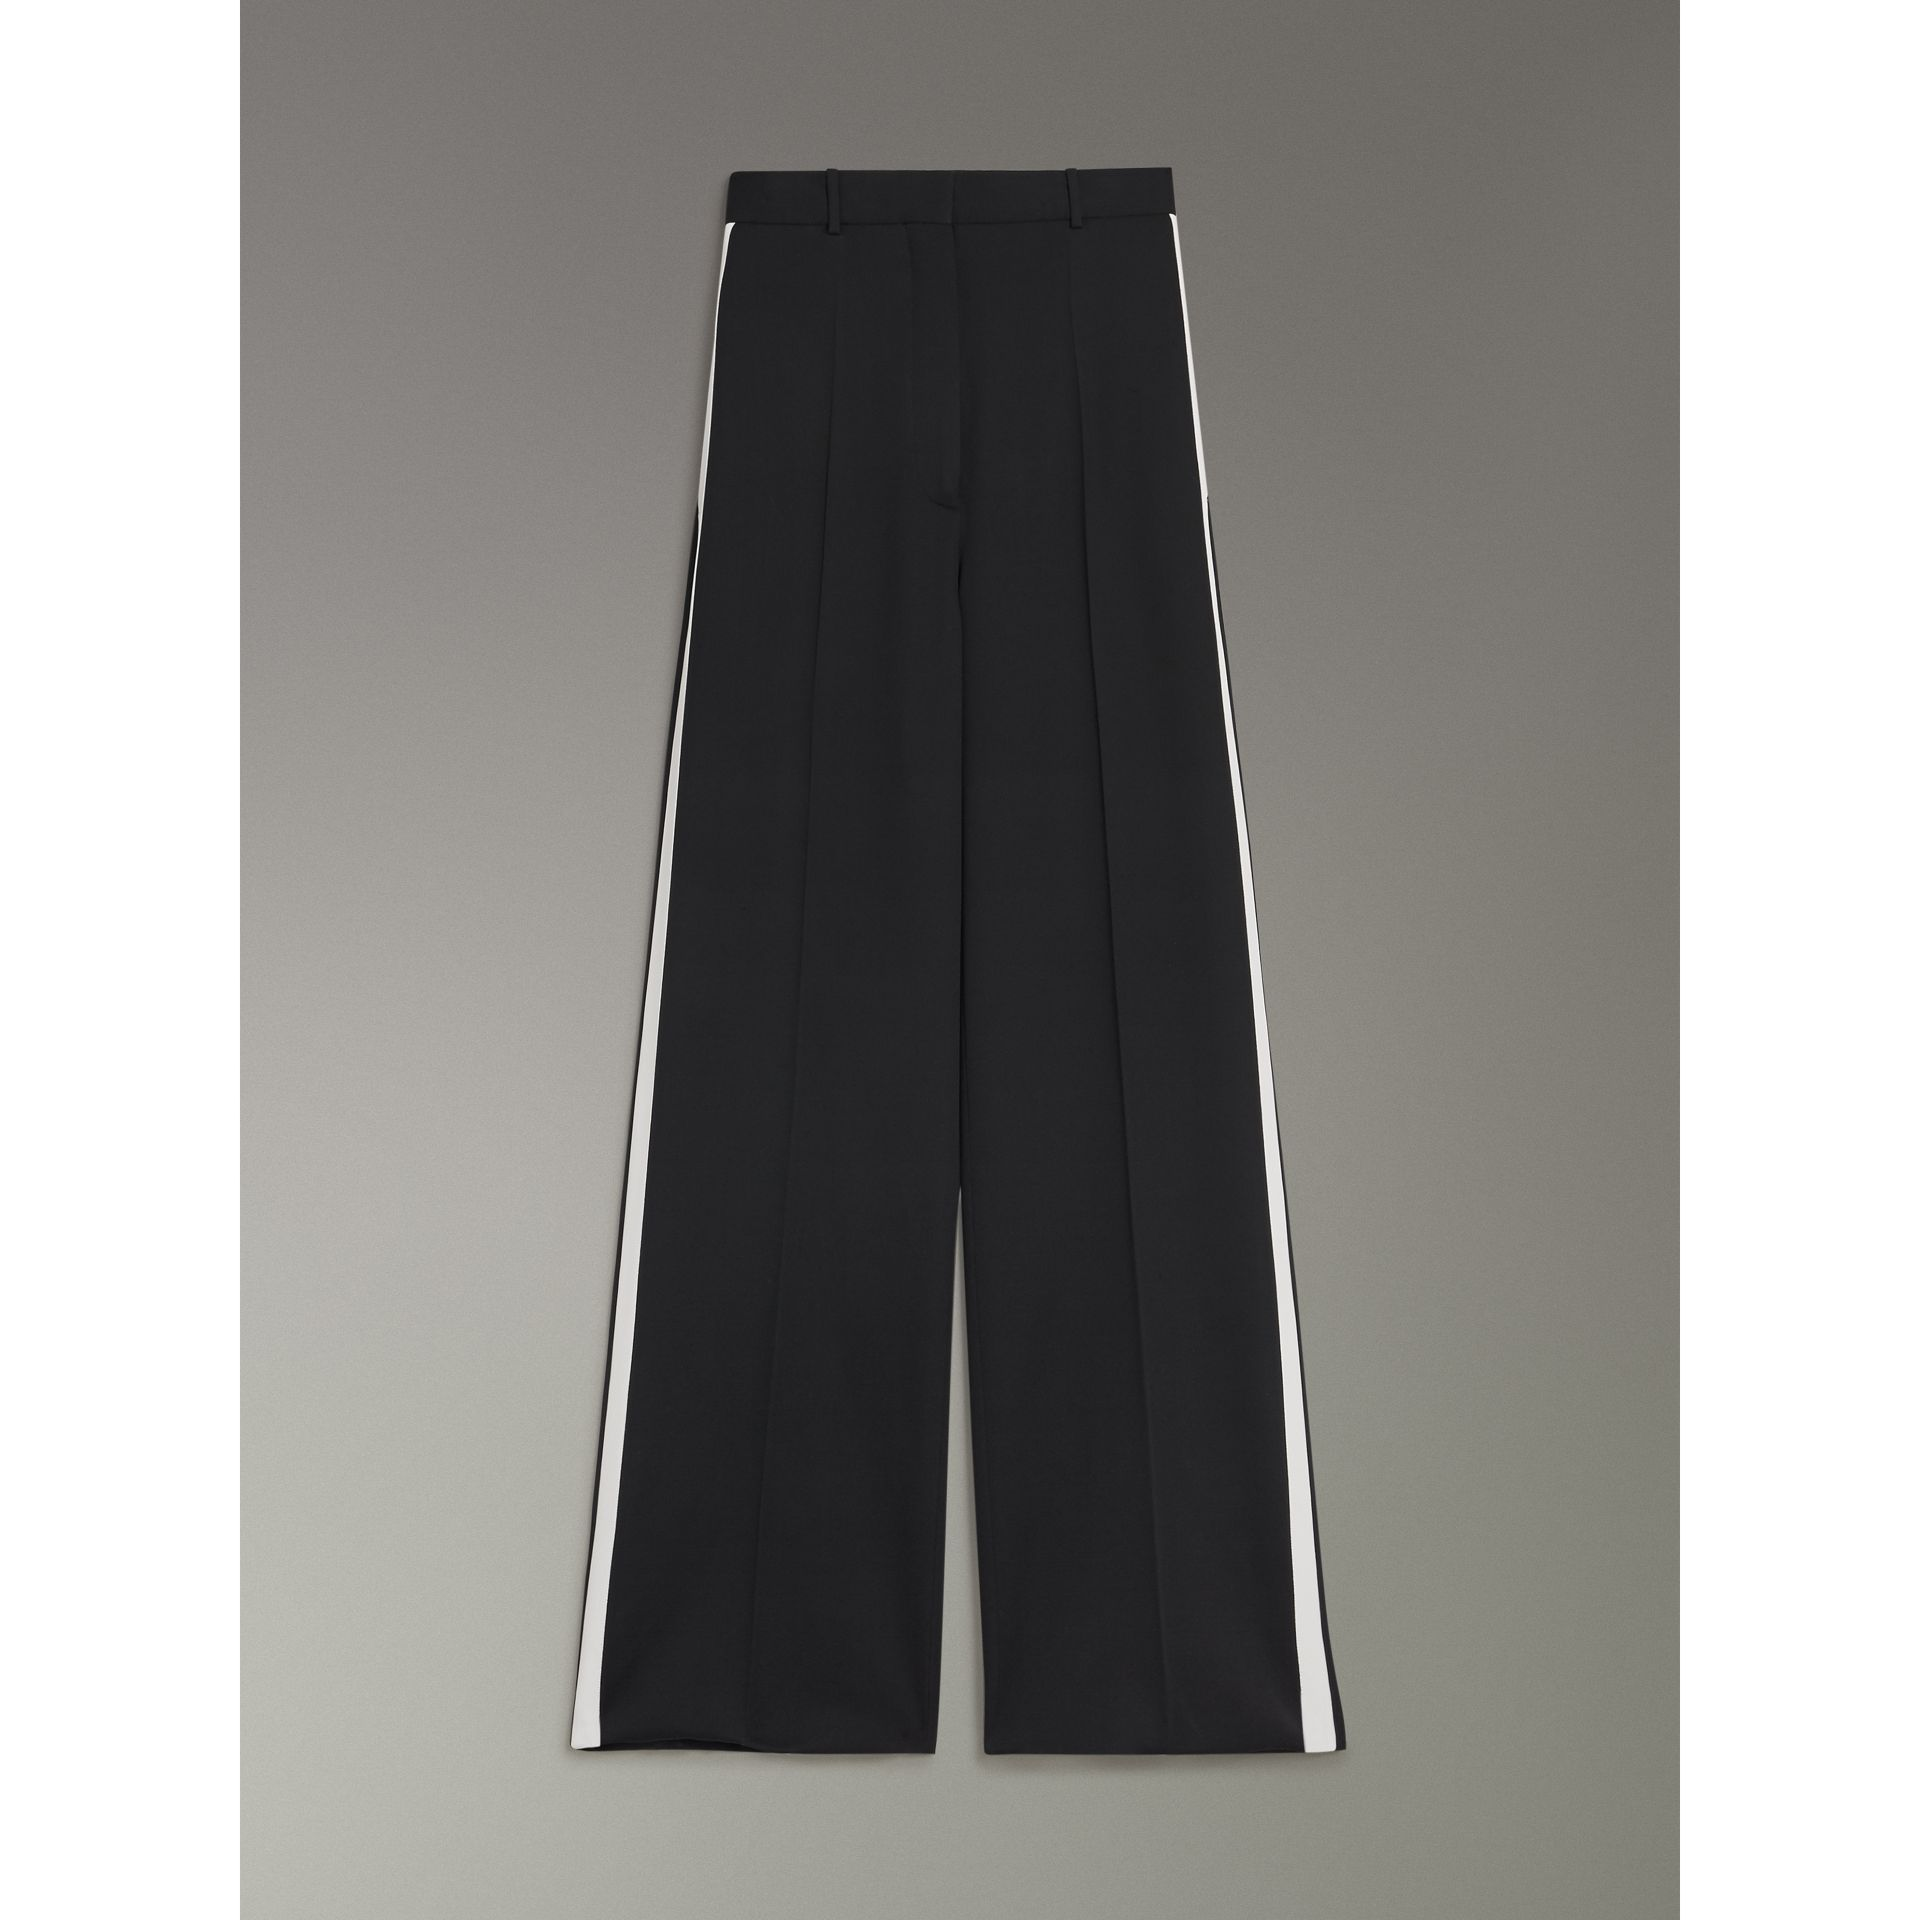 Pantalon ample en crêpe (Noir) - Femme | Burberry - photo de la galerie 3